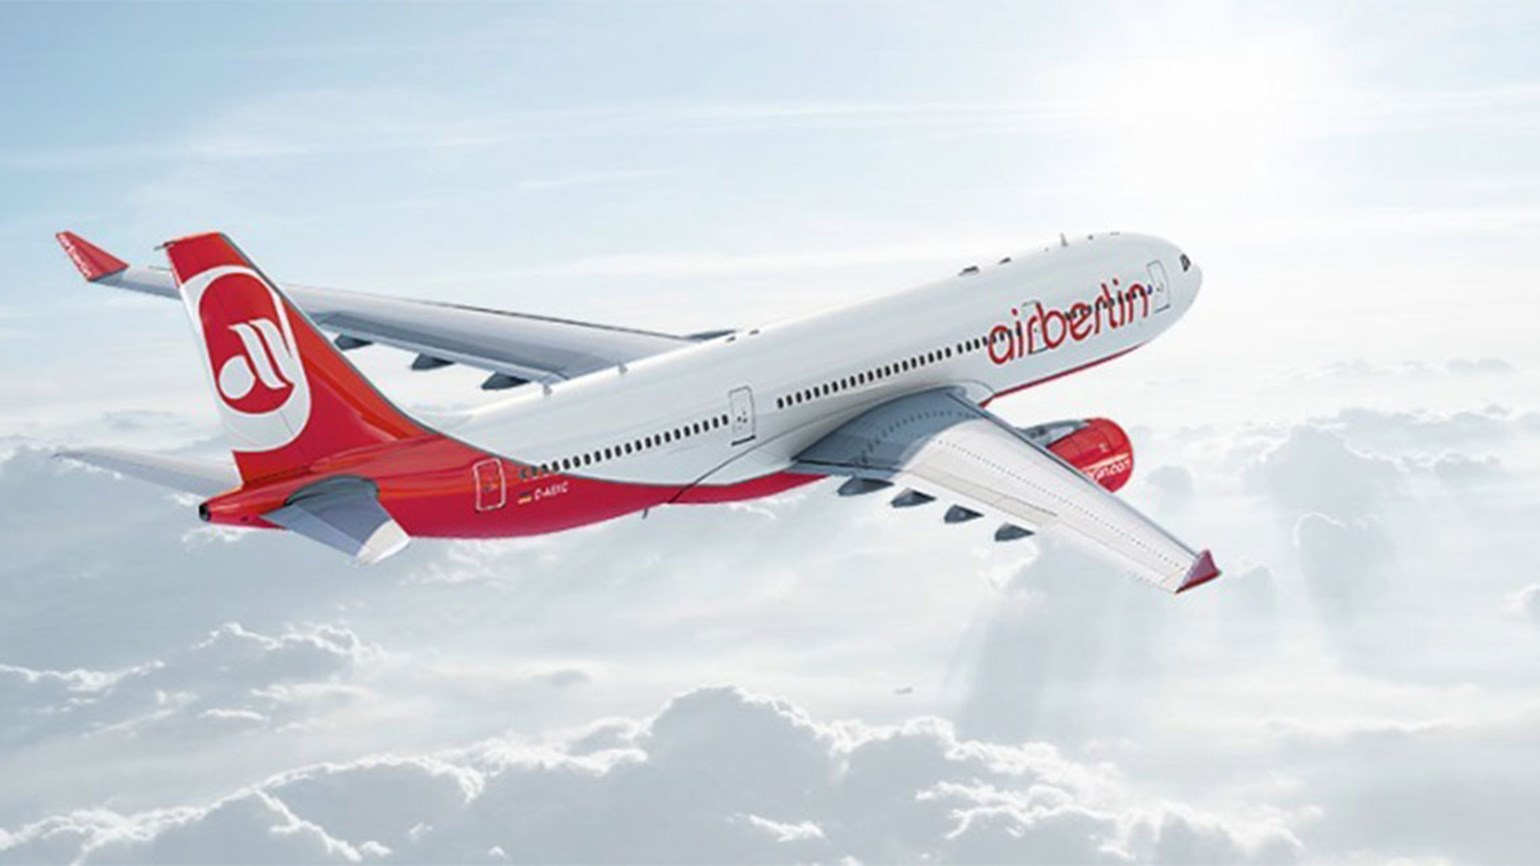 Air Berlin insolvent, breakup imminent